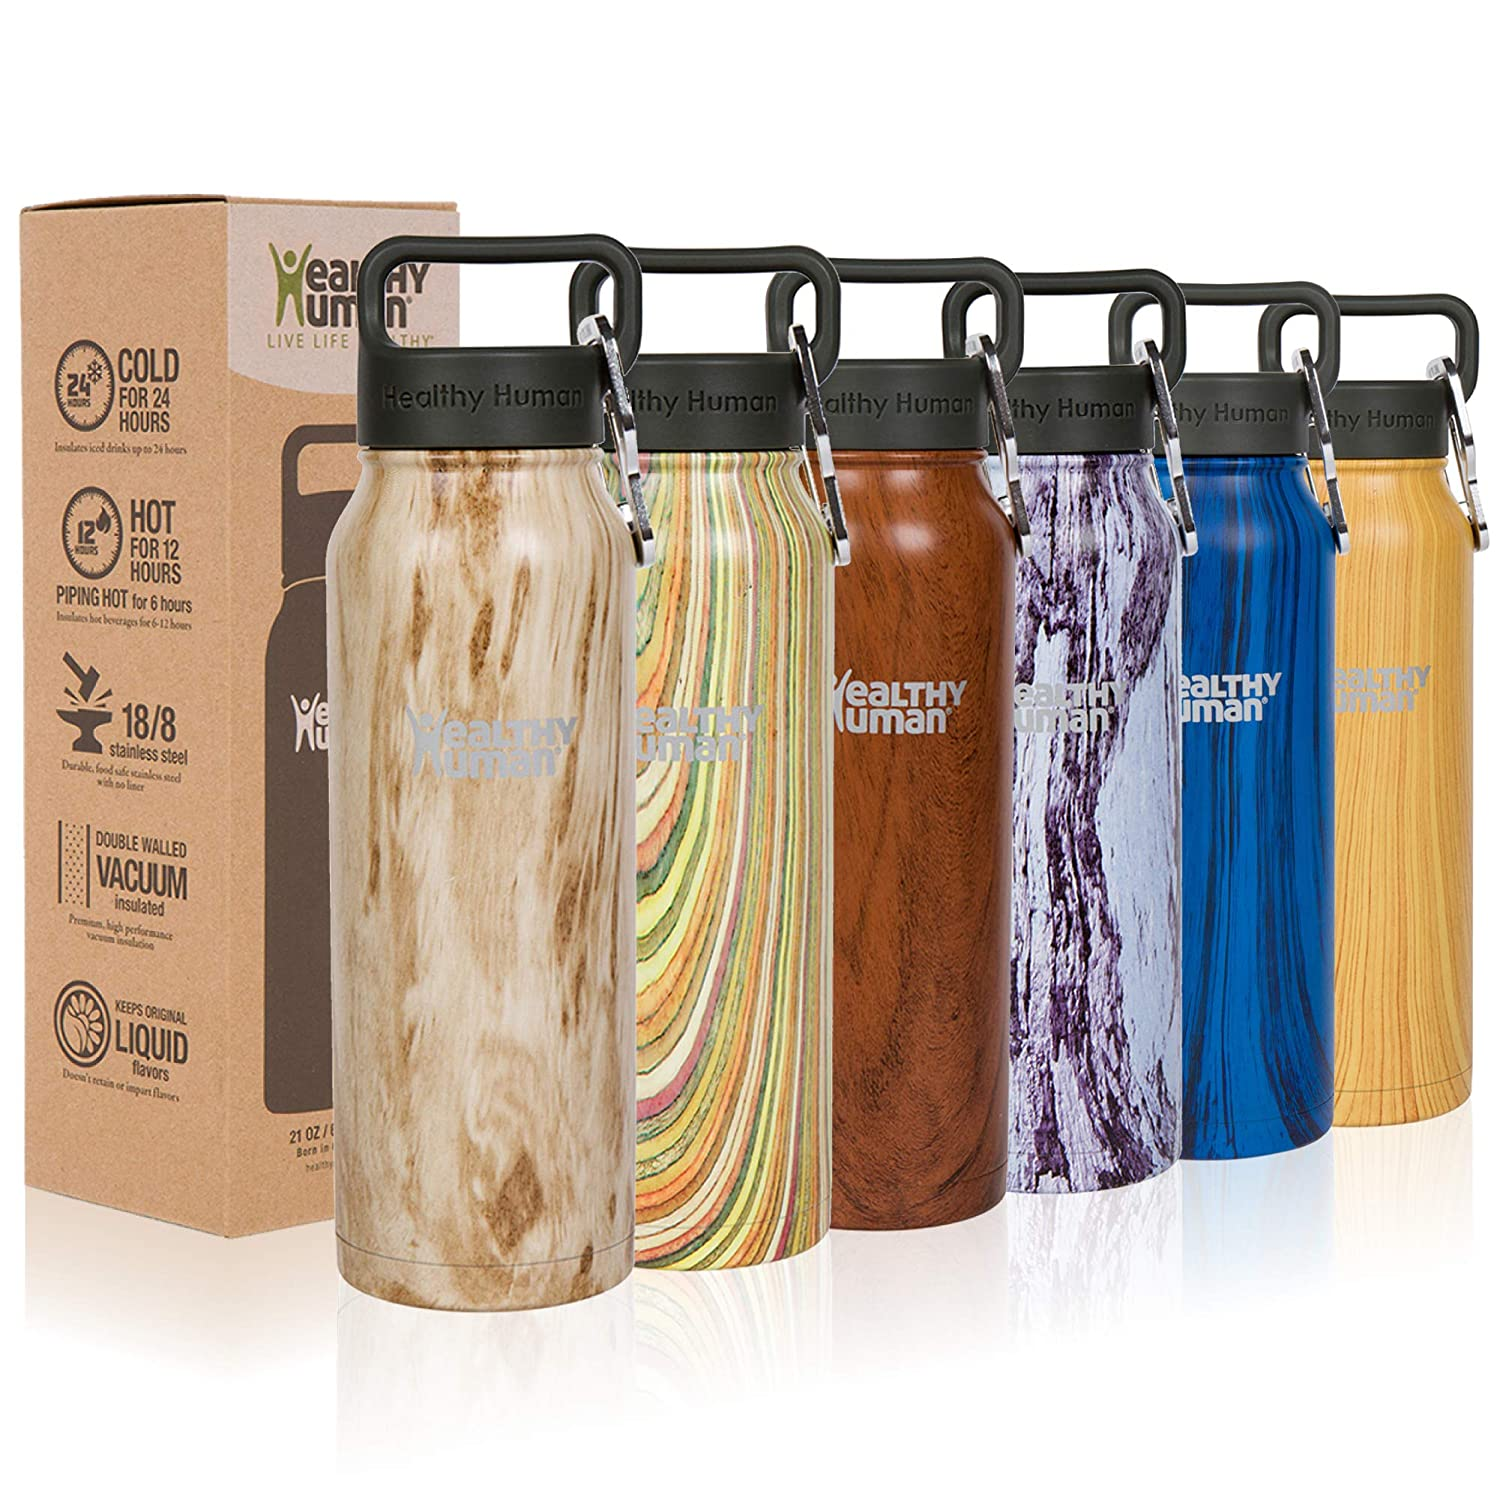 Hot 12 Hours 40 oz Keeps Cold 24 Hours Double Walled Water Bottle 32 oz 21 oz 16 oz Healthy Human Wood Collection Stainless Steel Vacuum Insulated Water Bottle